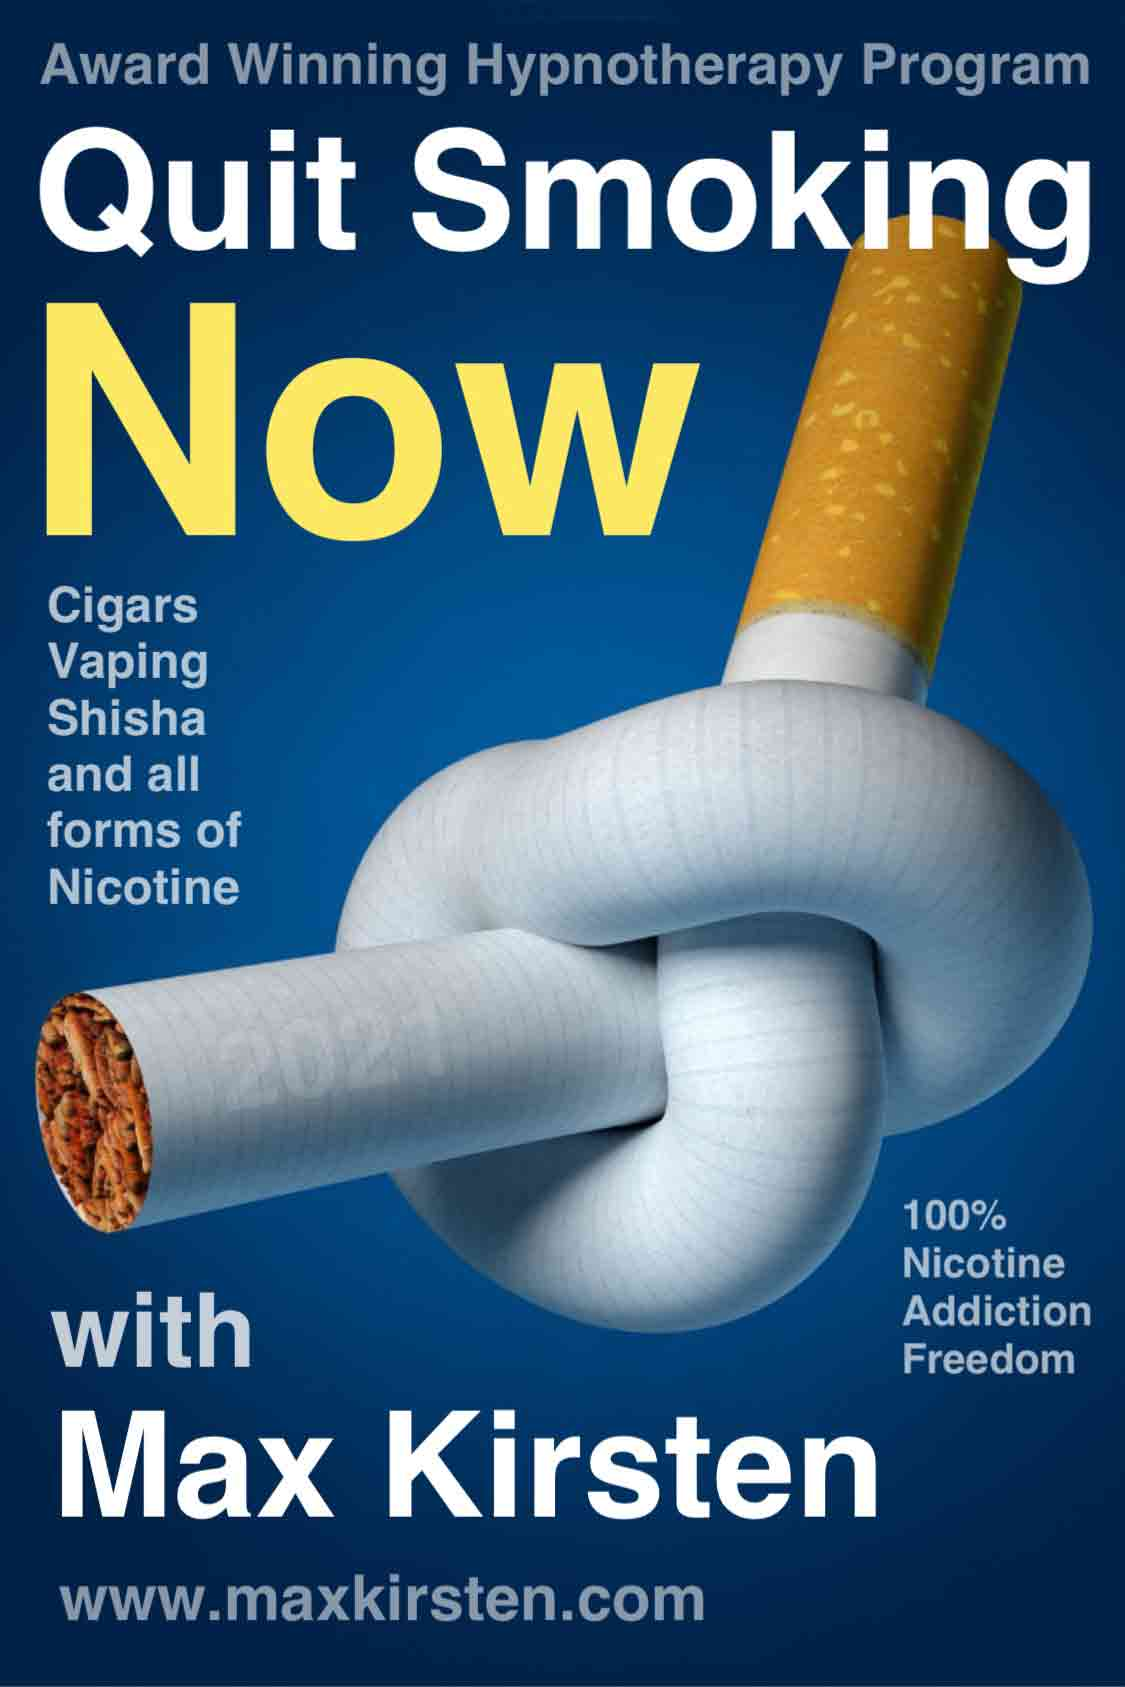 Quit Smoking Now App With Max Kirsten